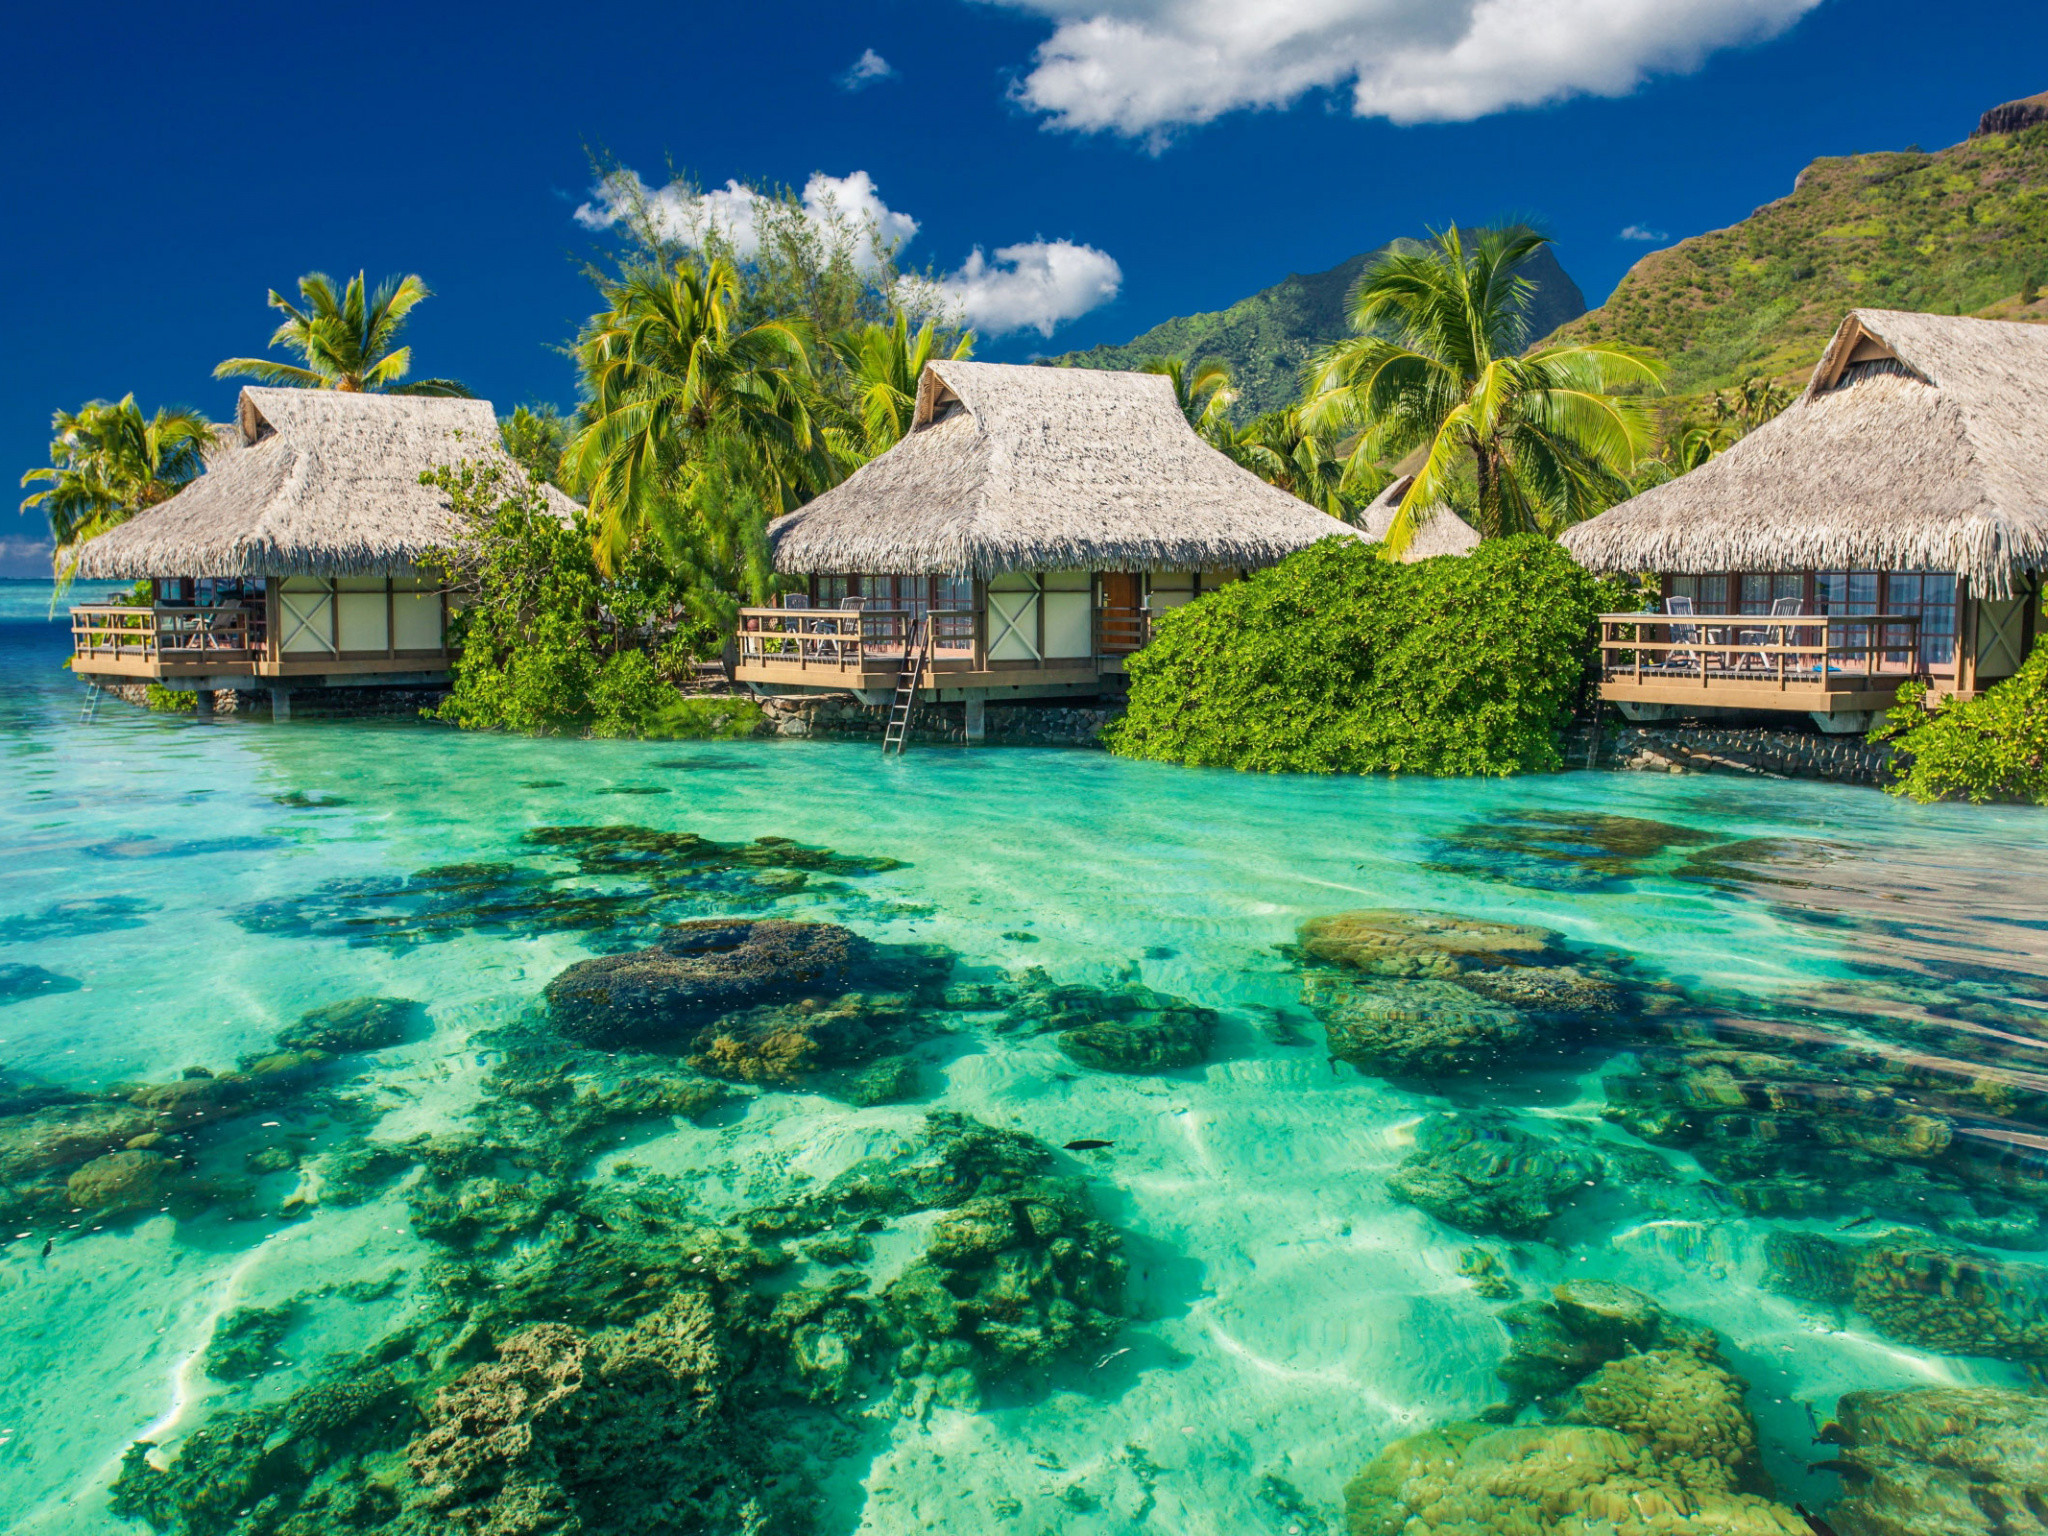 2048x1536 Coral Reef, Tahiti, Resort Town, Resort, Caribbean Wallpaper in   Resolution